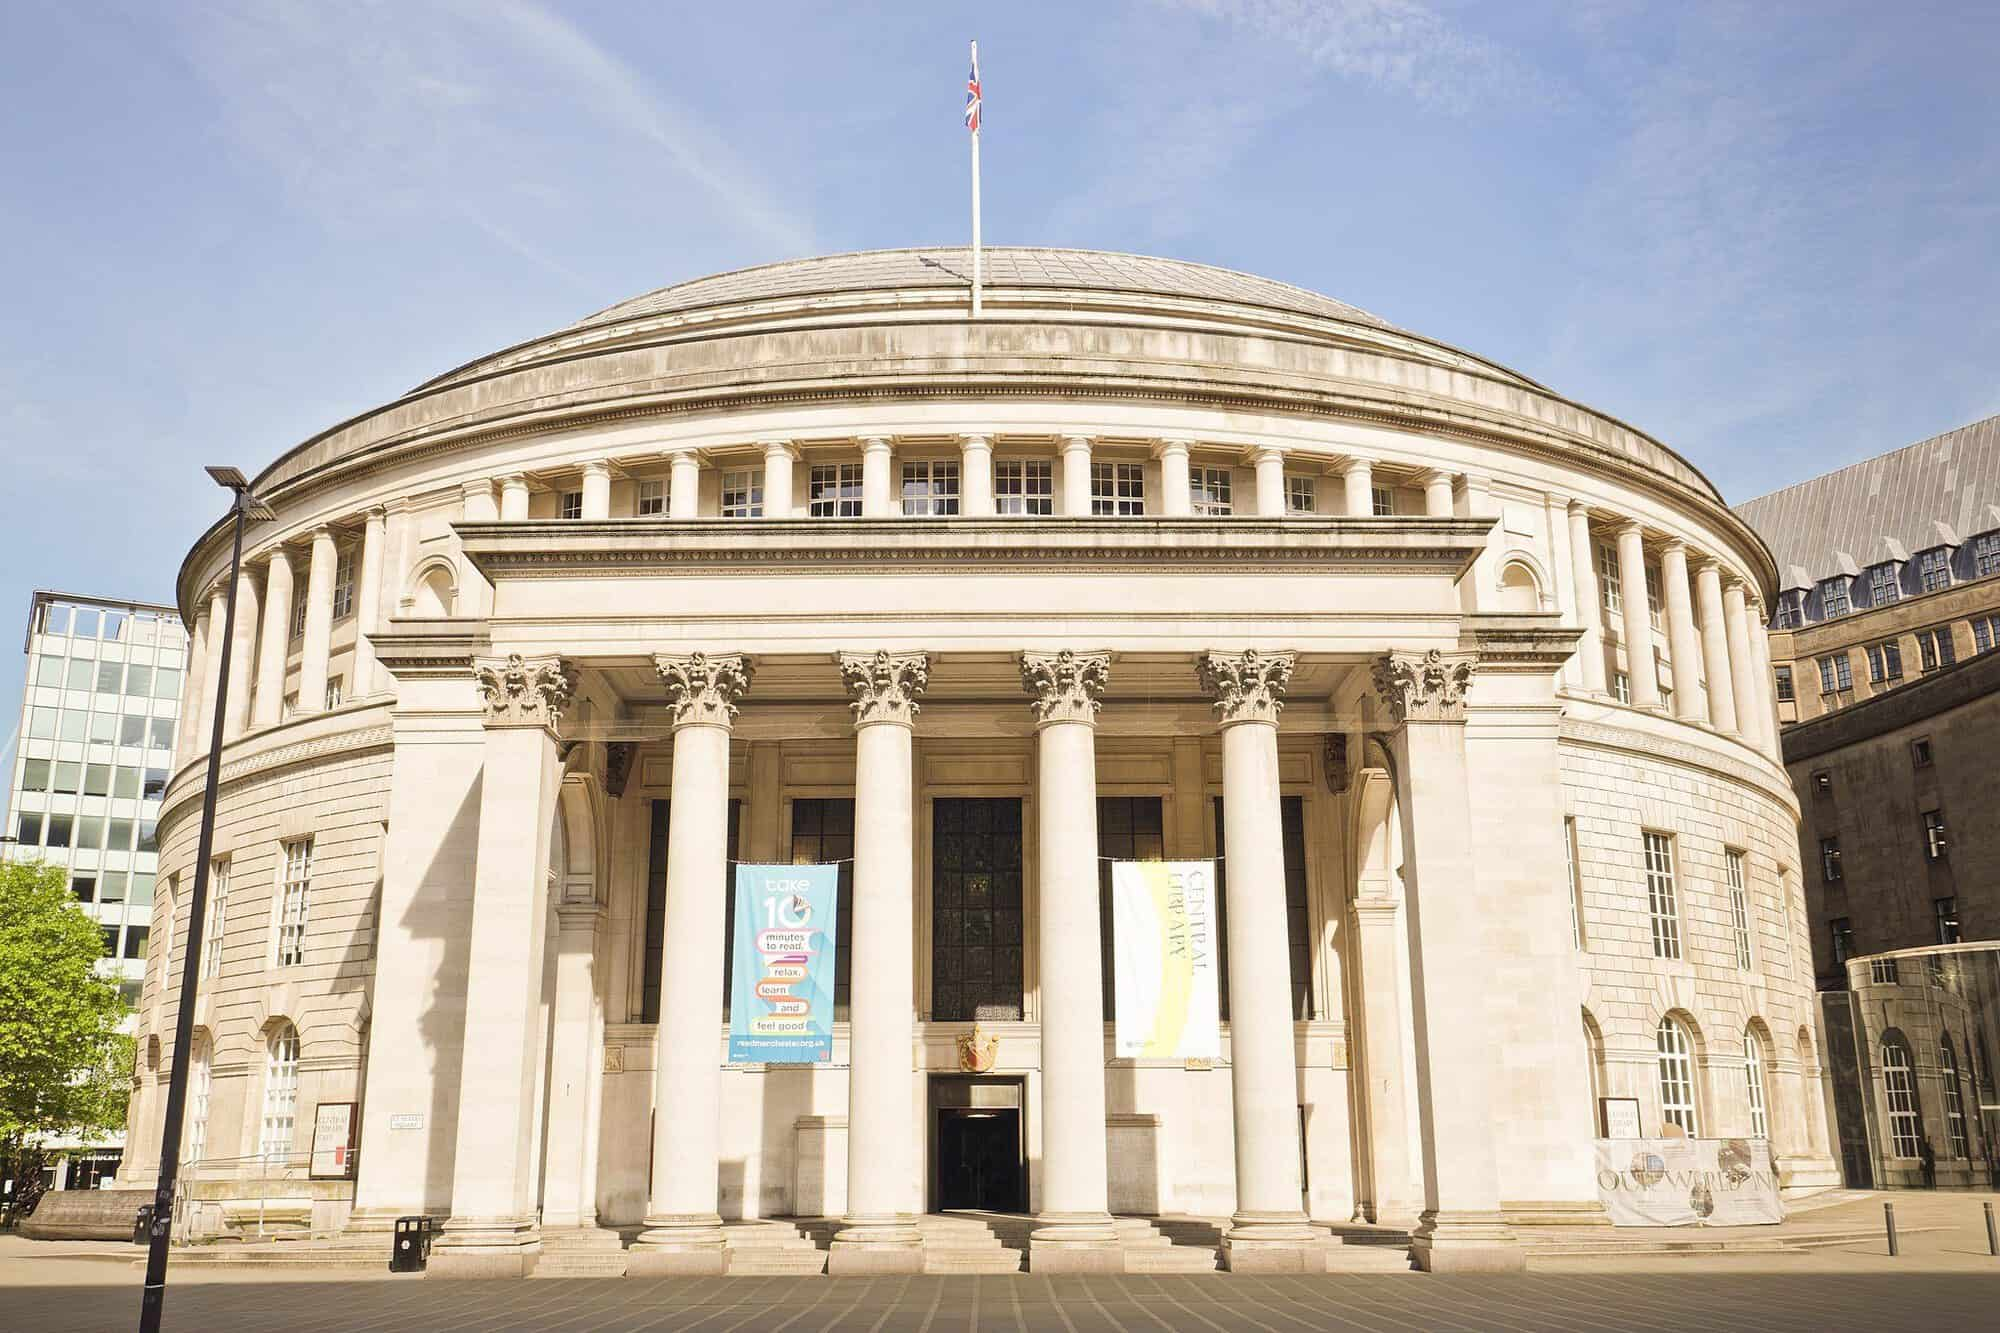 Manchester Central Library England